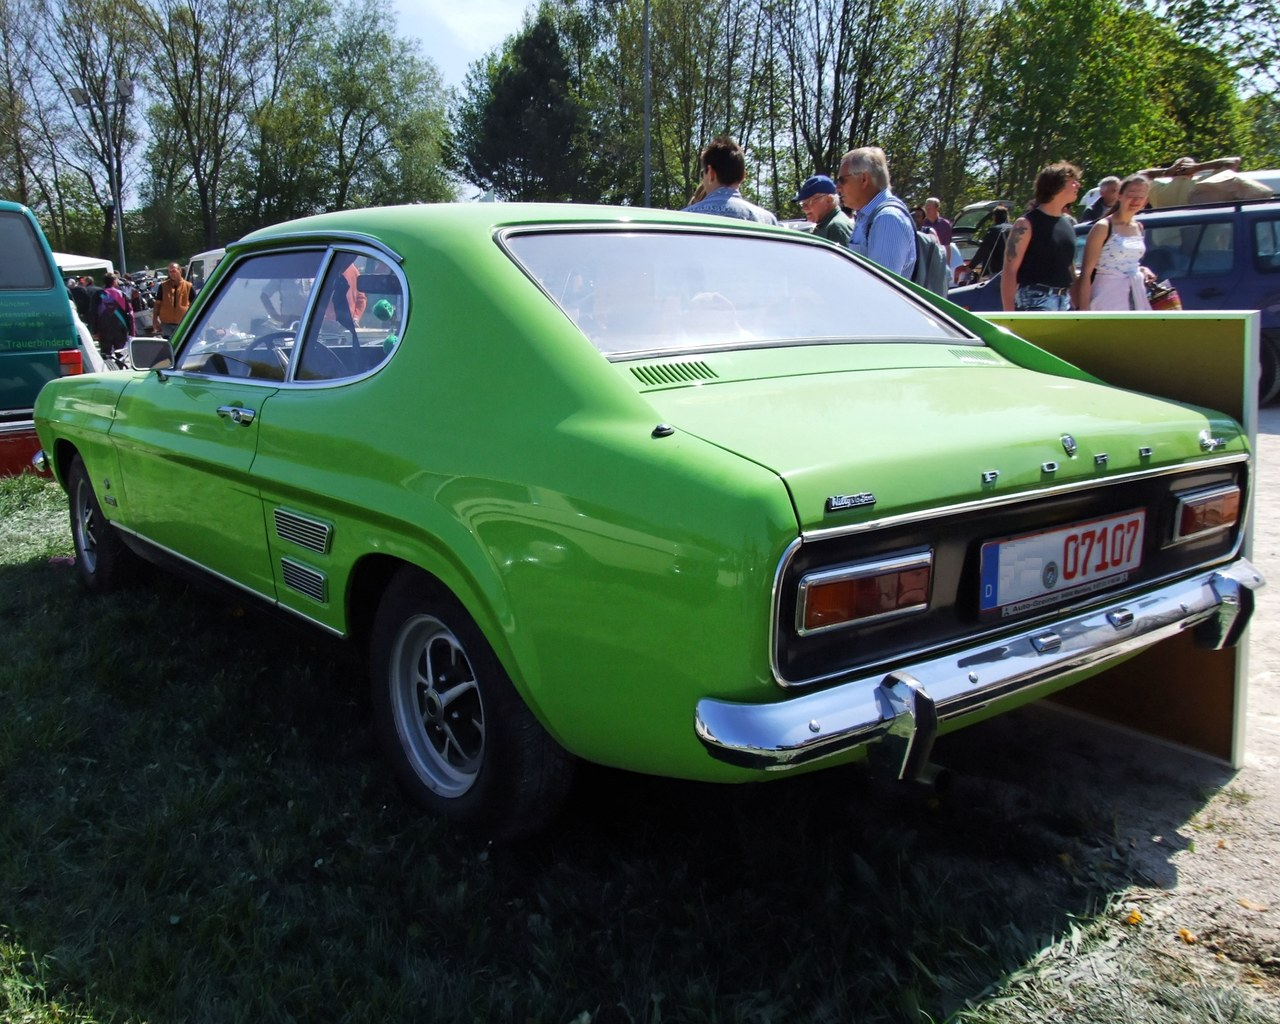 Brakes For Ford Capri Probably The Most Sophisticated Ford Capri further Ford Capri 1500 besides 1975 Opel Manta in addition Alexis Capri Has 49 More Images Alexis as well Ford Capri. on ford capri